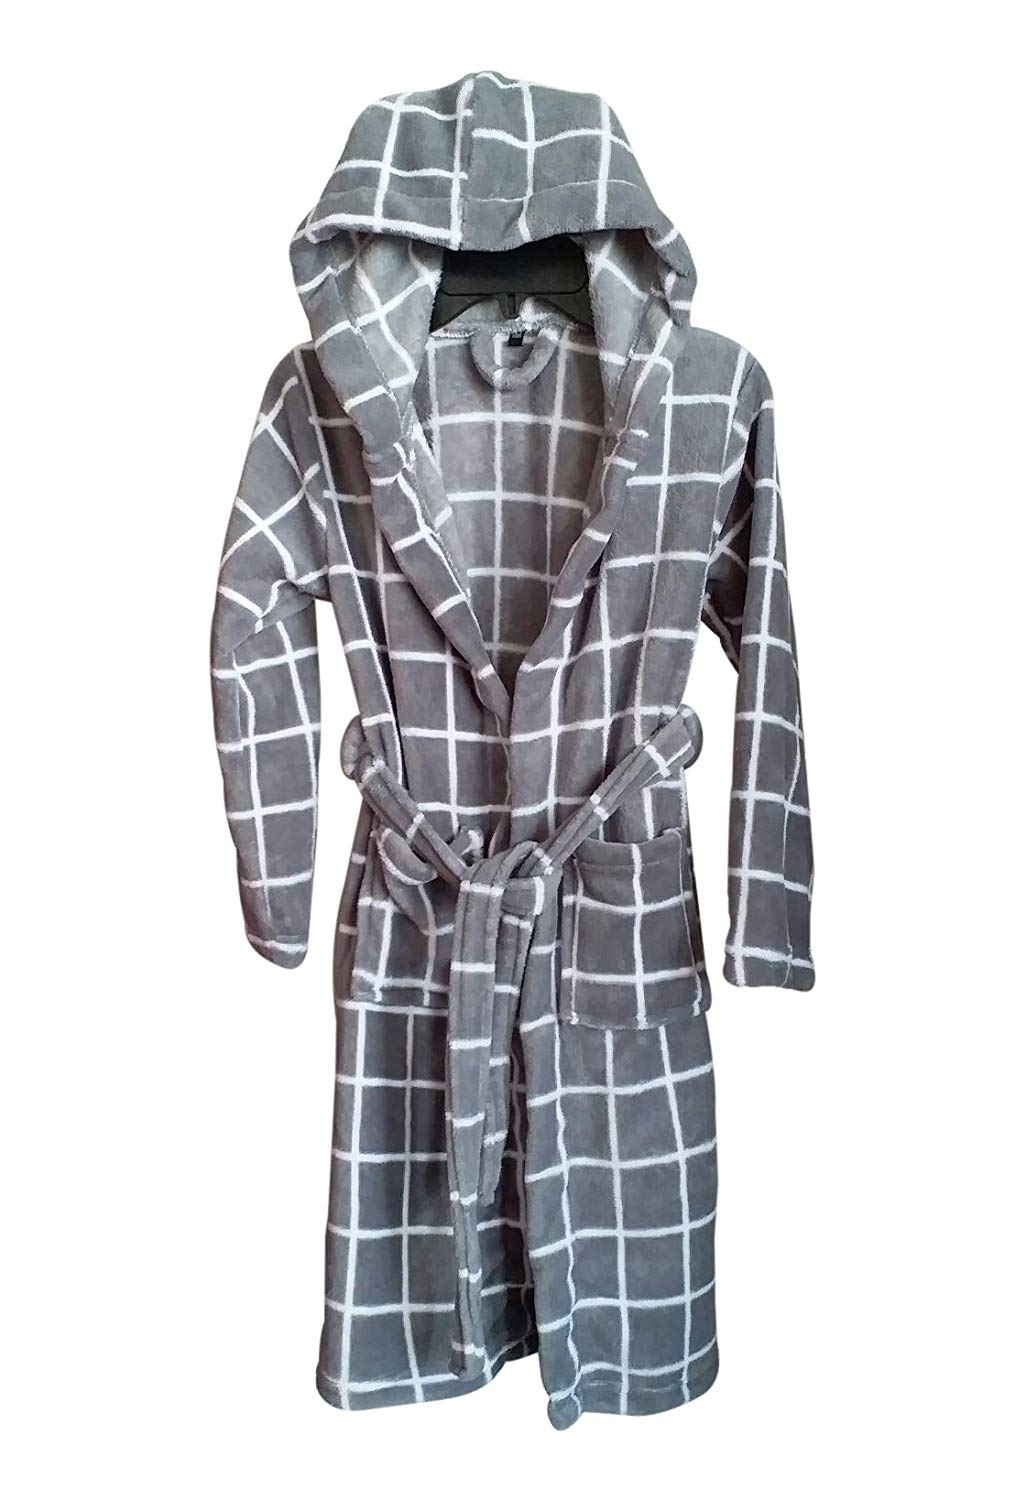 e4255bec2f Linenwalas Super Comfort Unisex Bath Gown Night Gown Poller Fleece Checks  Bath Robe